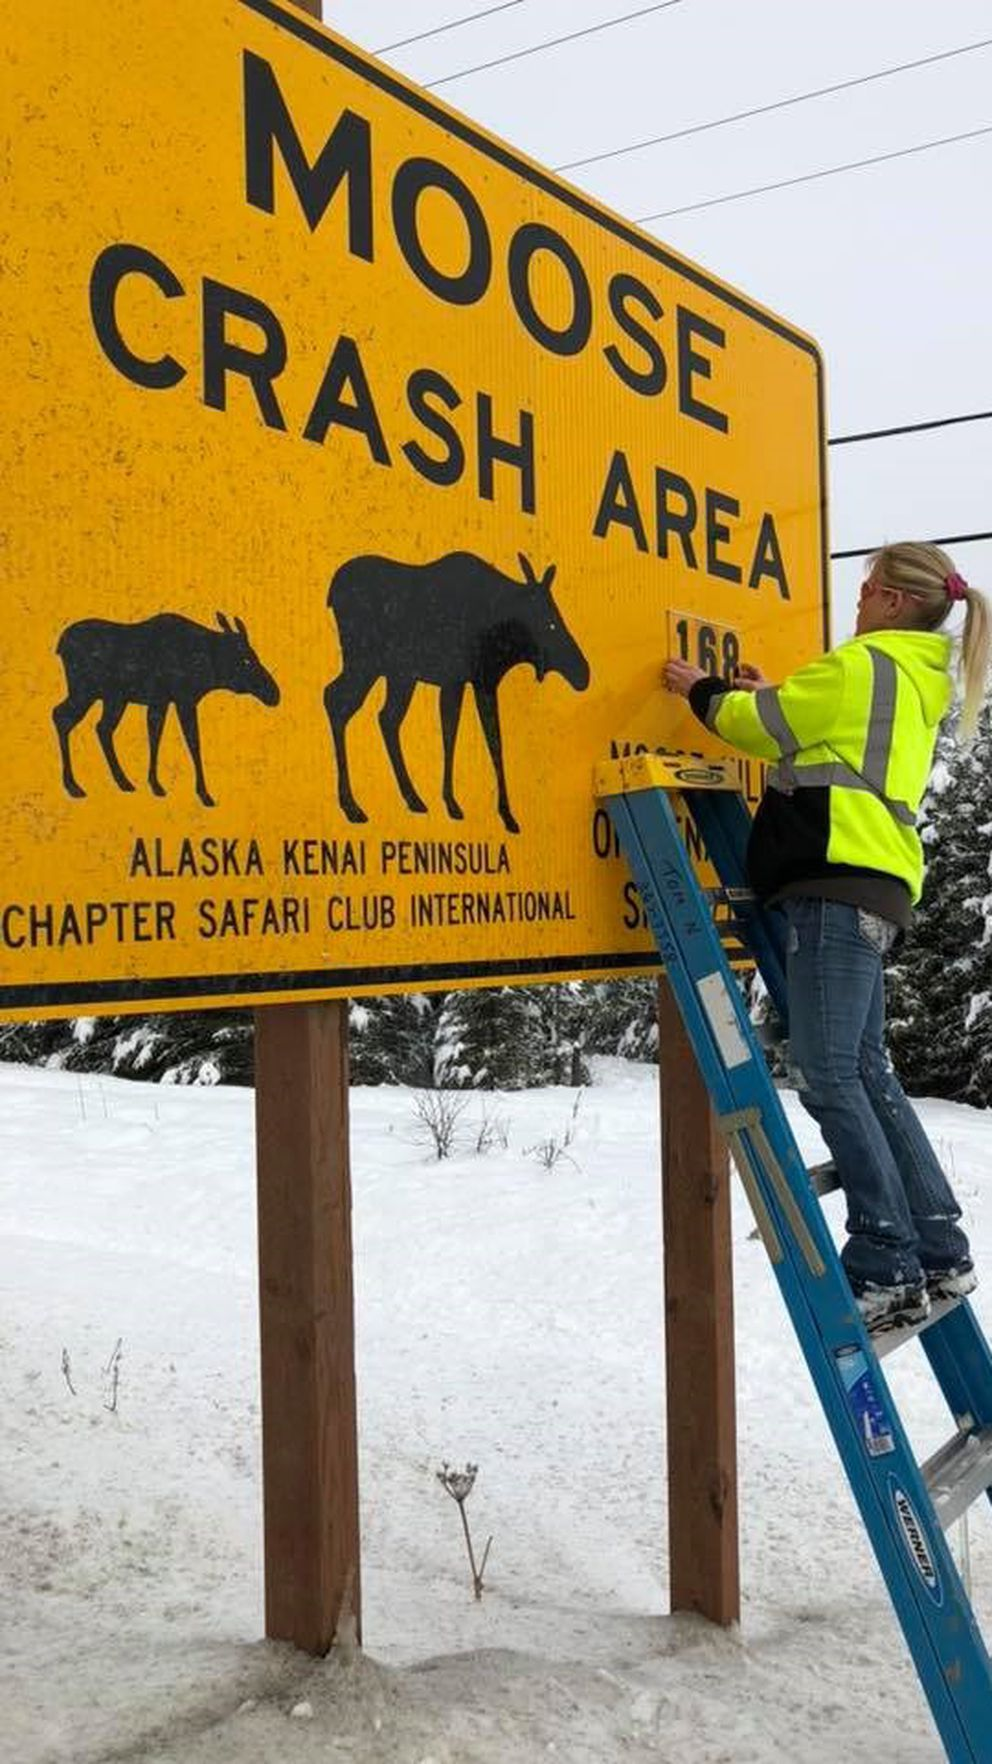 Laurie Speakman, 'The Moose Lady, ' spent the past eight years collecting roadkill moose for local Alaska charities. (Laurie Speakman/Pew Charitable Trusts/TNS)